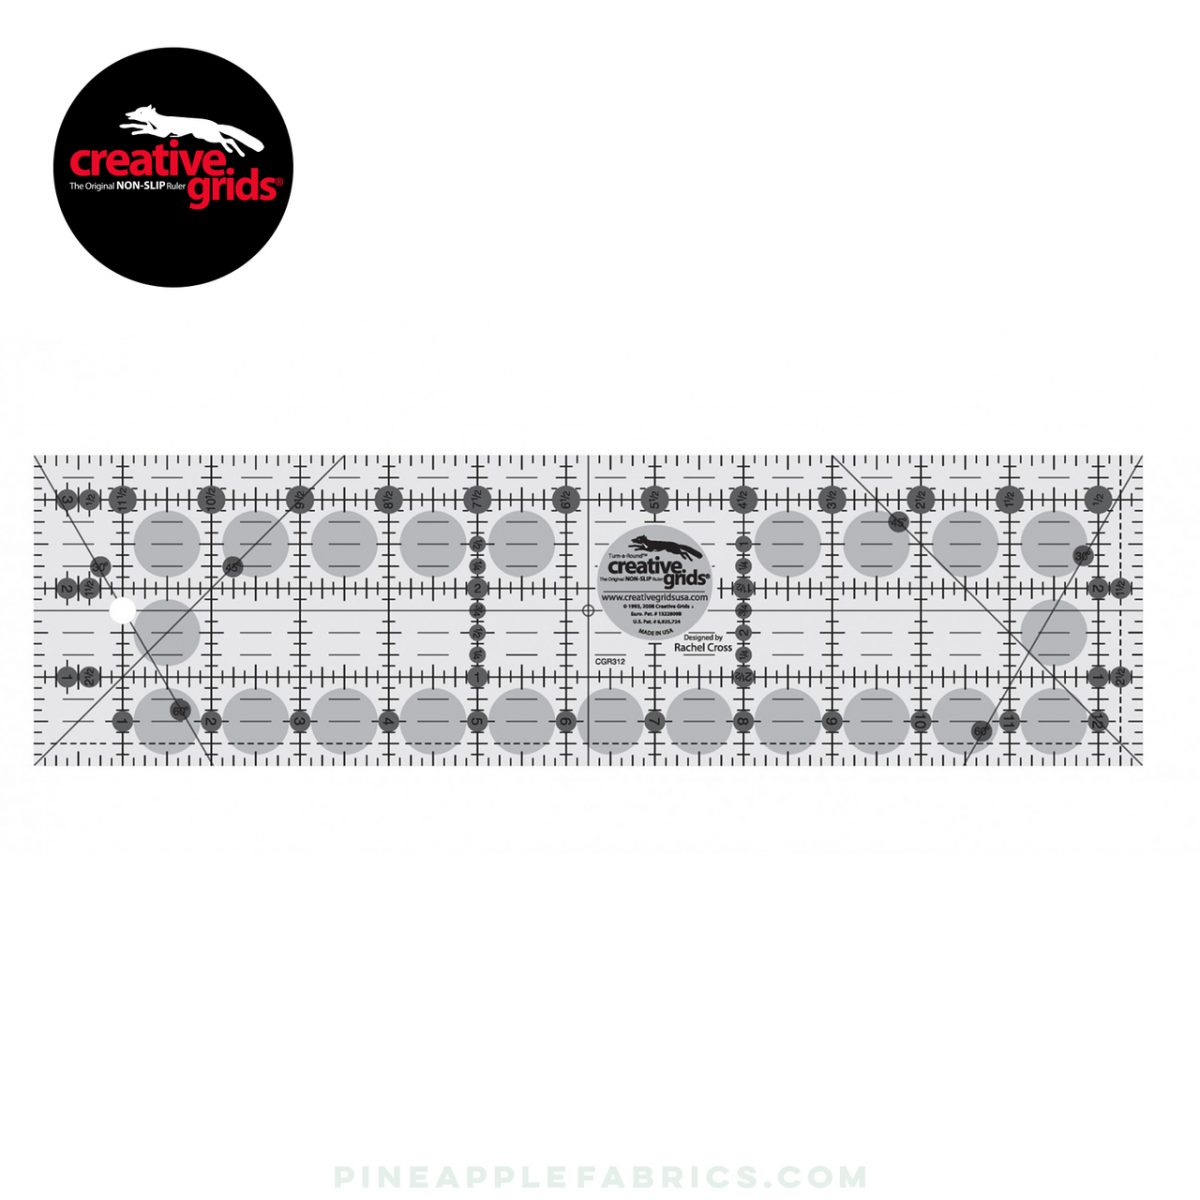 CGR312 - Creative Grids Quilt Ruler 3-1/2in x 12-1/2in